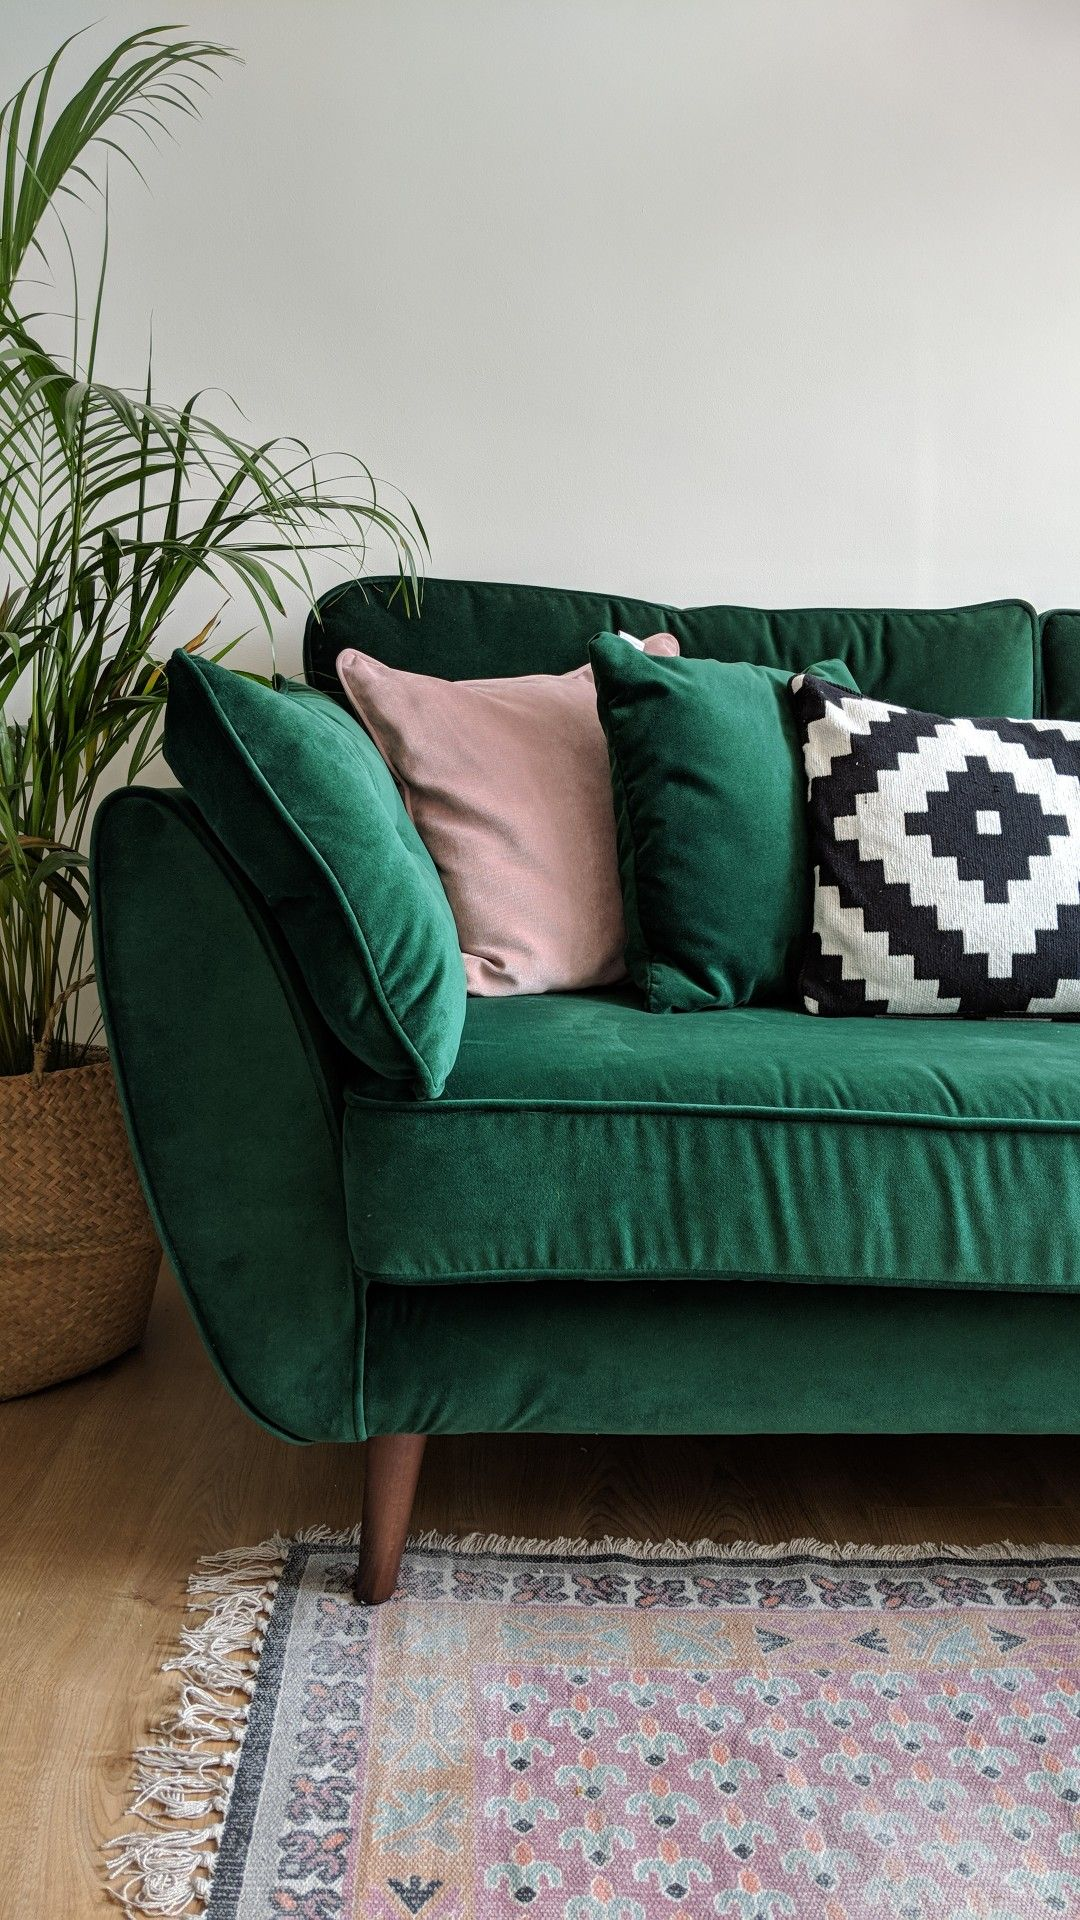 Zinc Dfs Sofa In Velvet Green Teamed With French Connection Pink Rug A Homely Mid Cent Green Living Room Decor Mid Century Living Room Decor Living Room Green